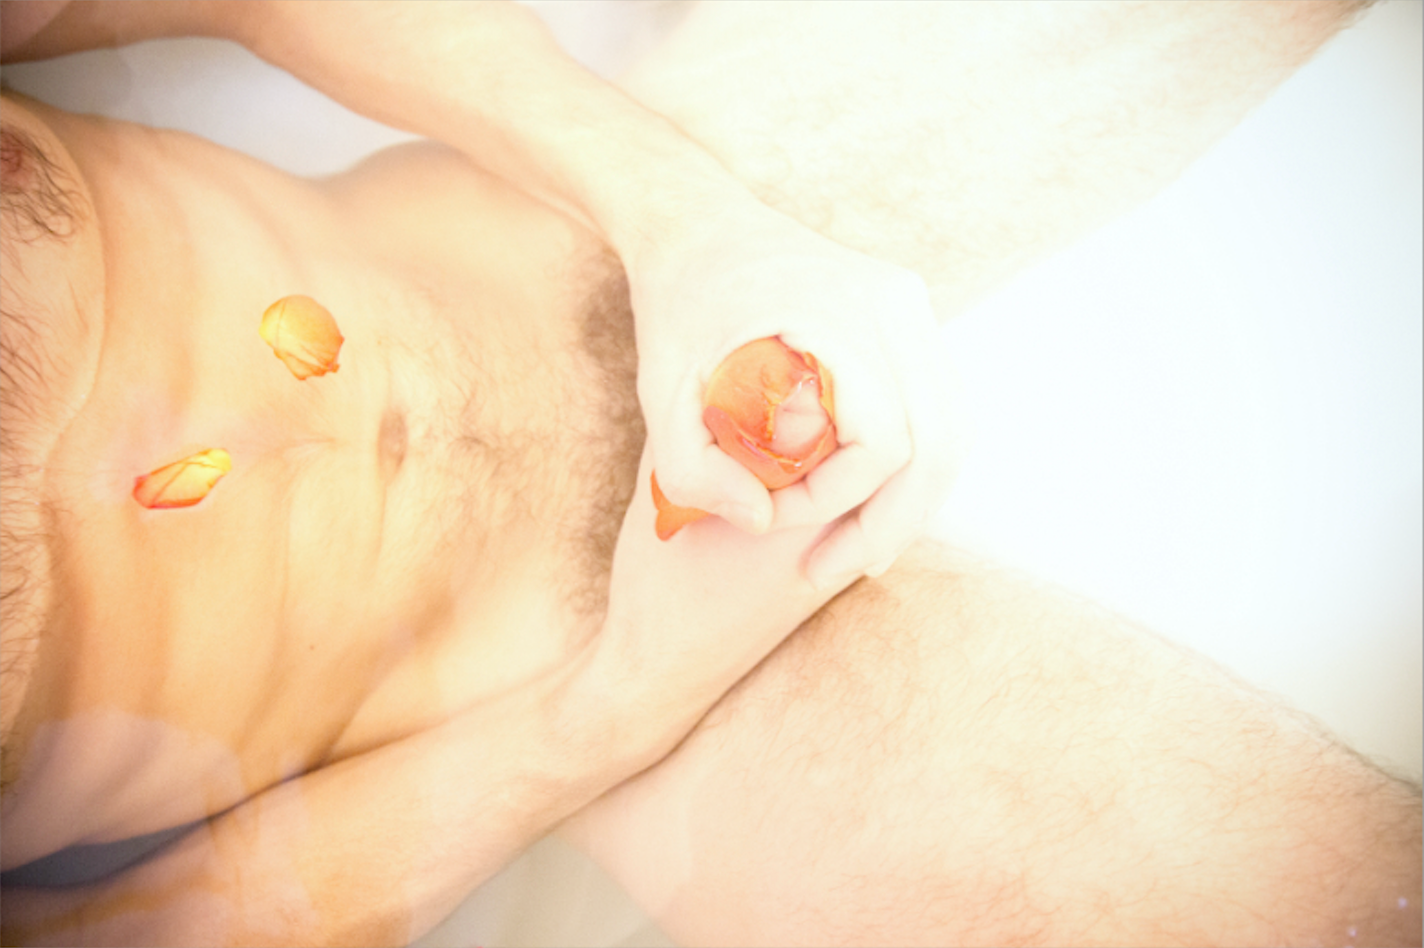 Naked Man in Bath with Petals